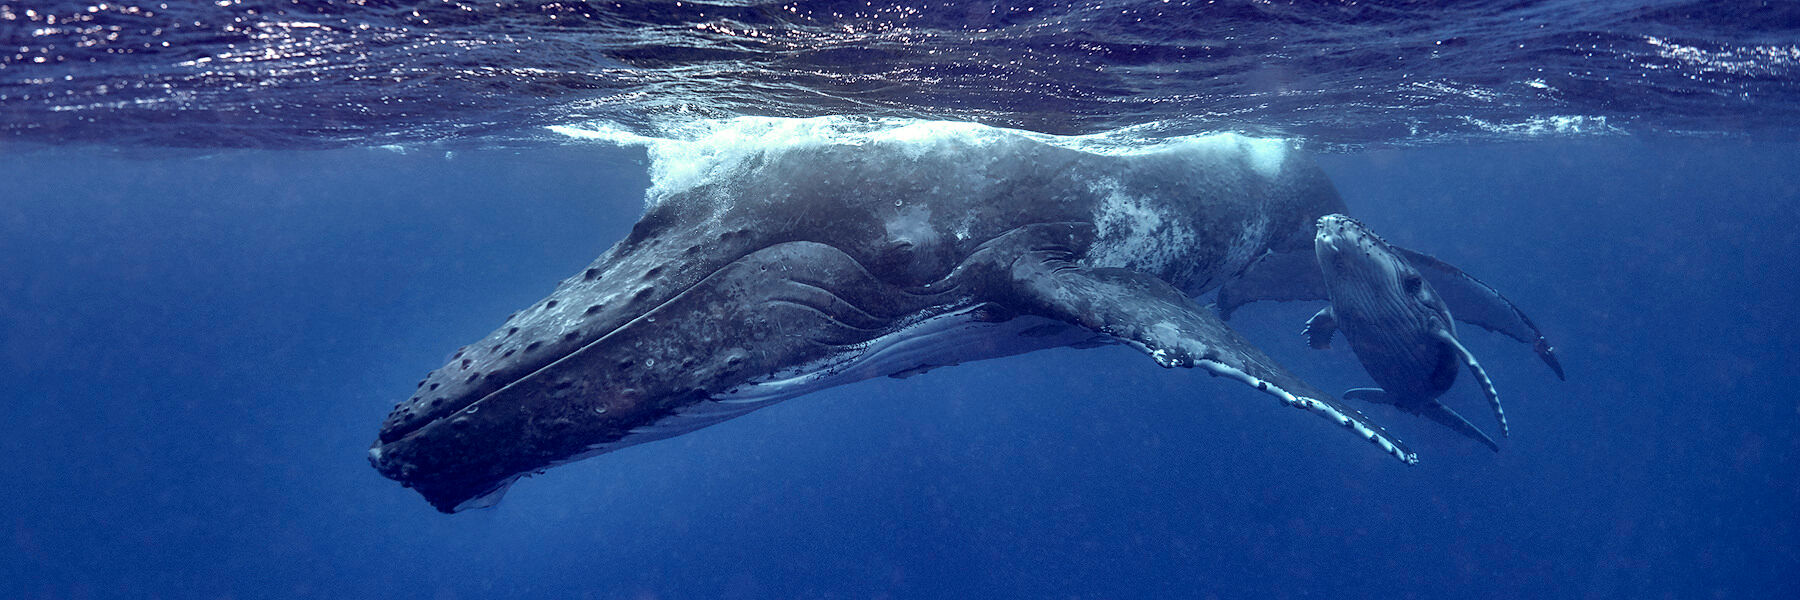 underwater photograph of a mother and calf humpback whale.  Photographed by Andrew Shoemaker